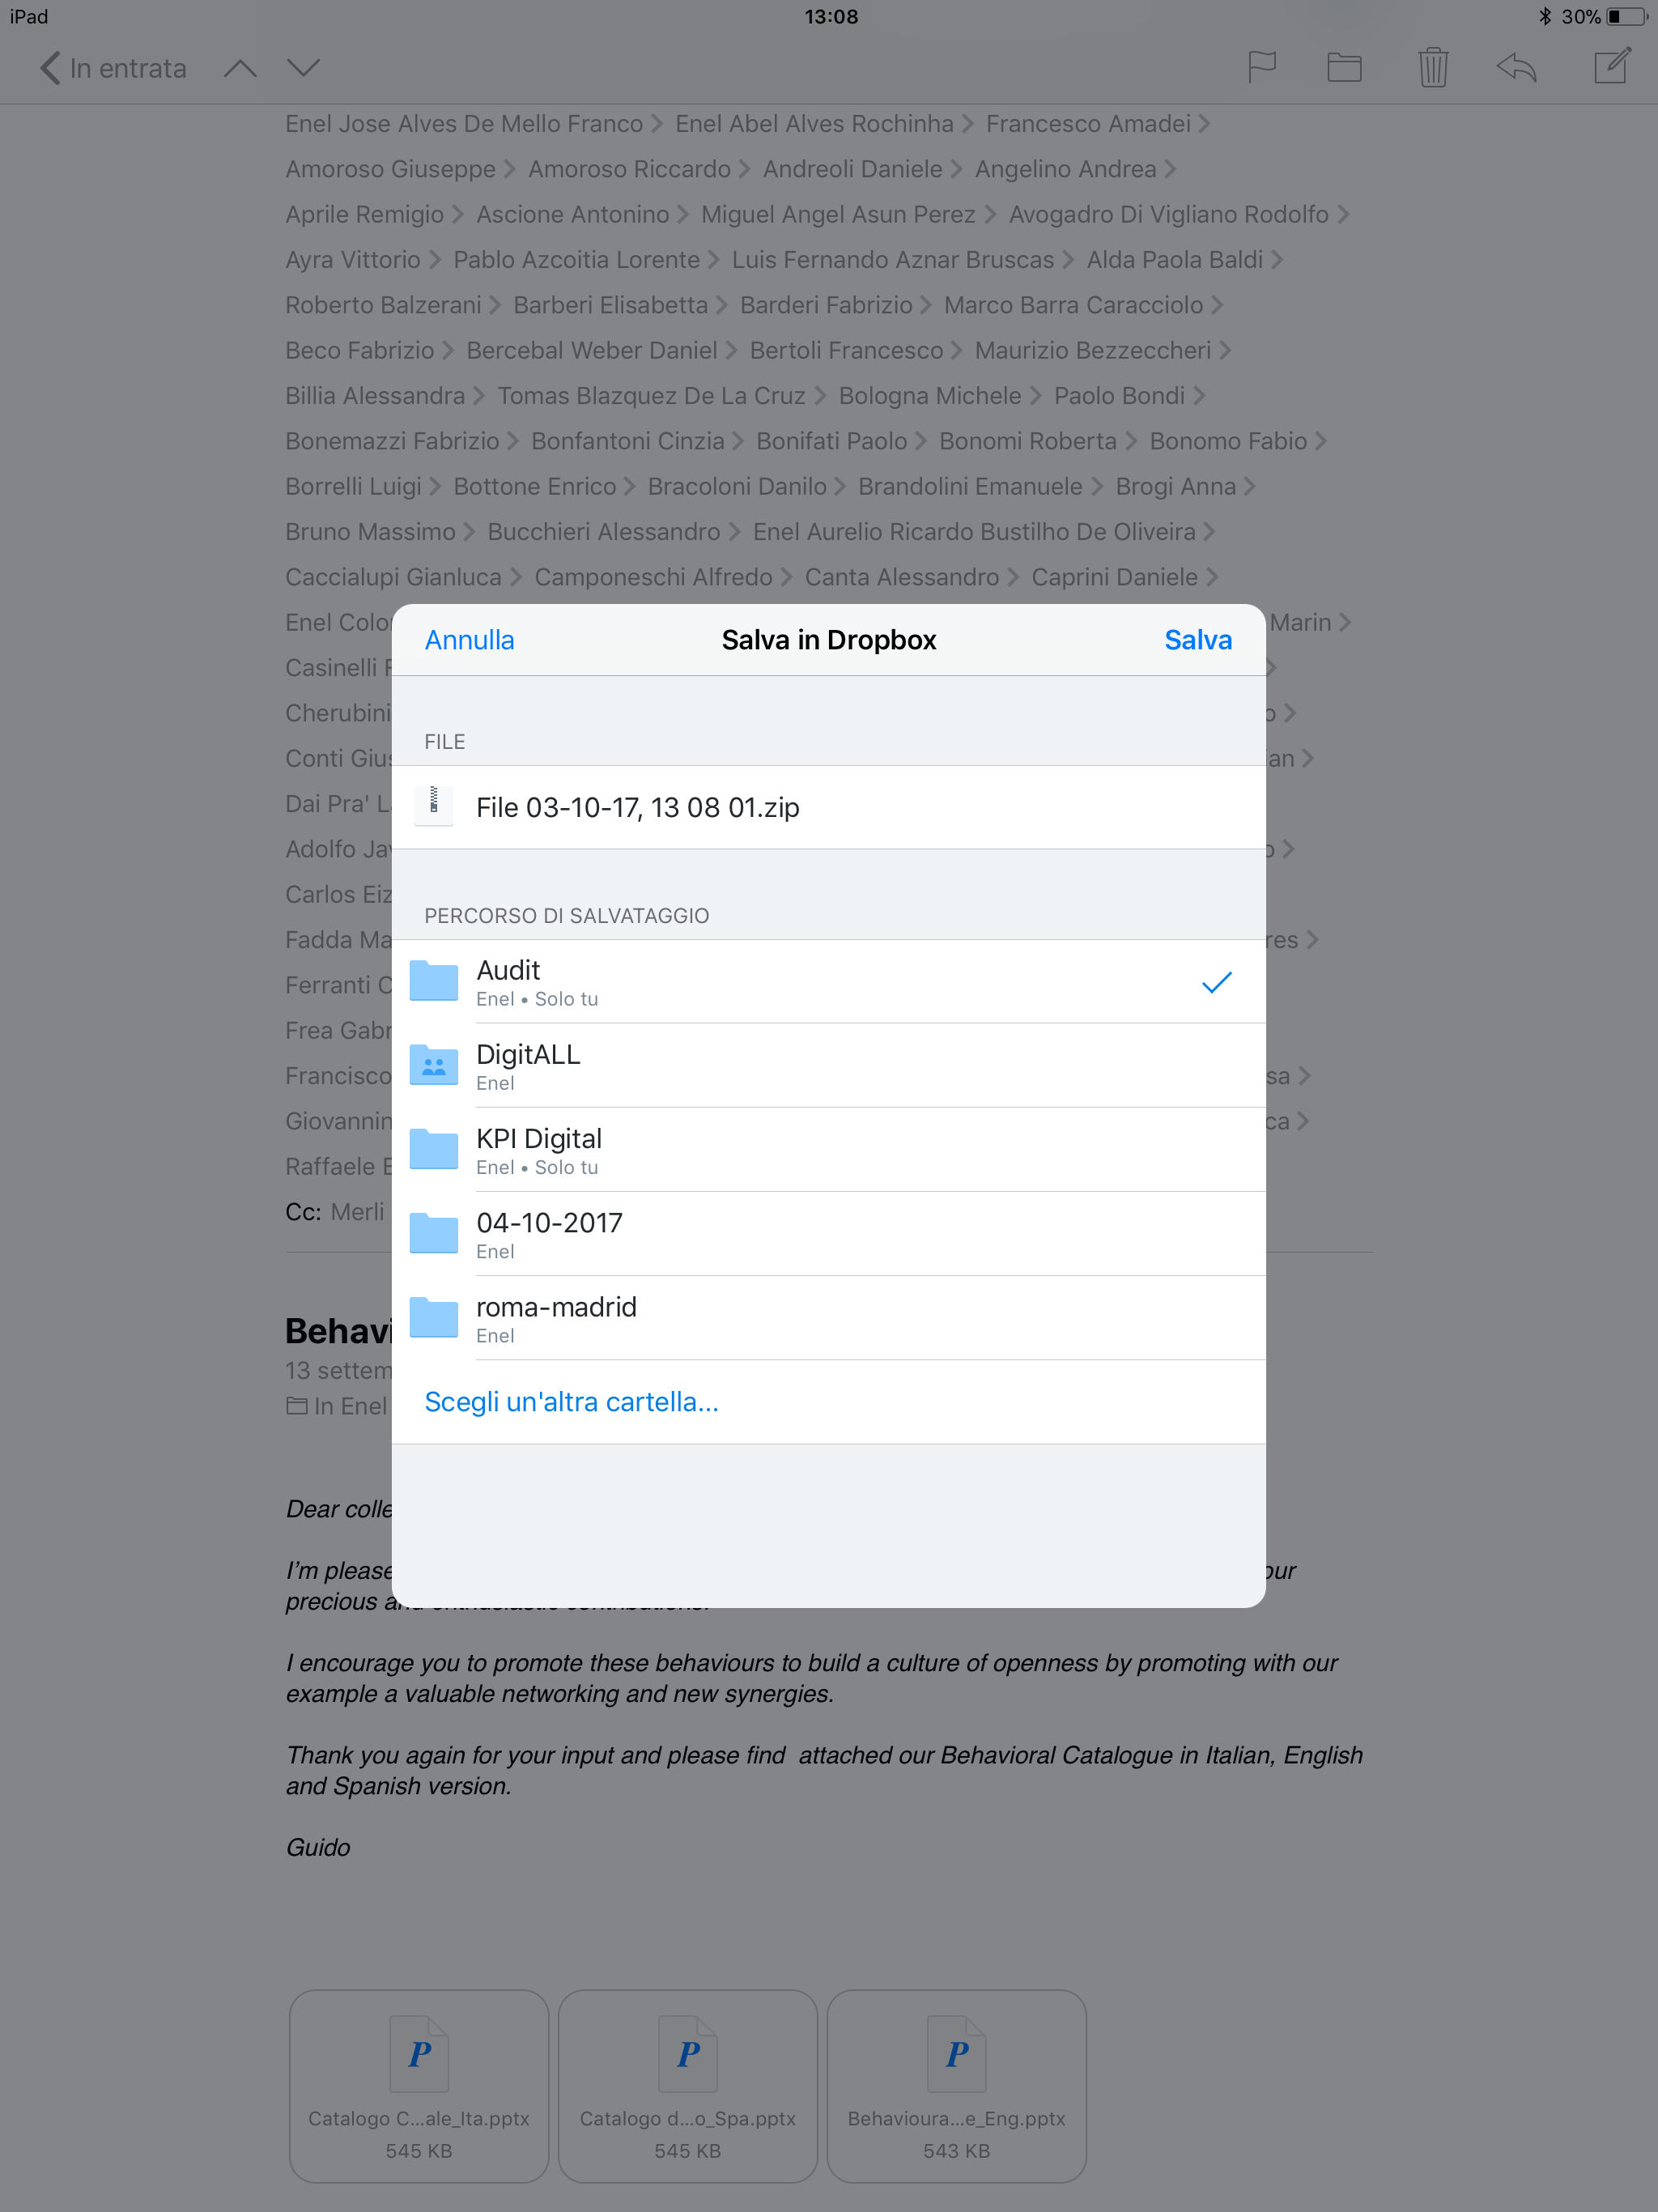 how to save a document in pages on ipad